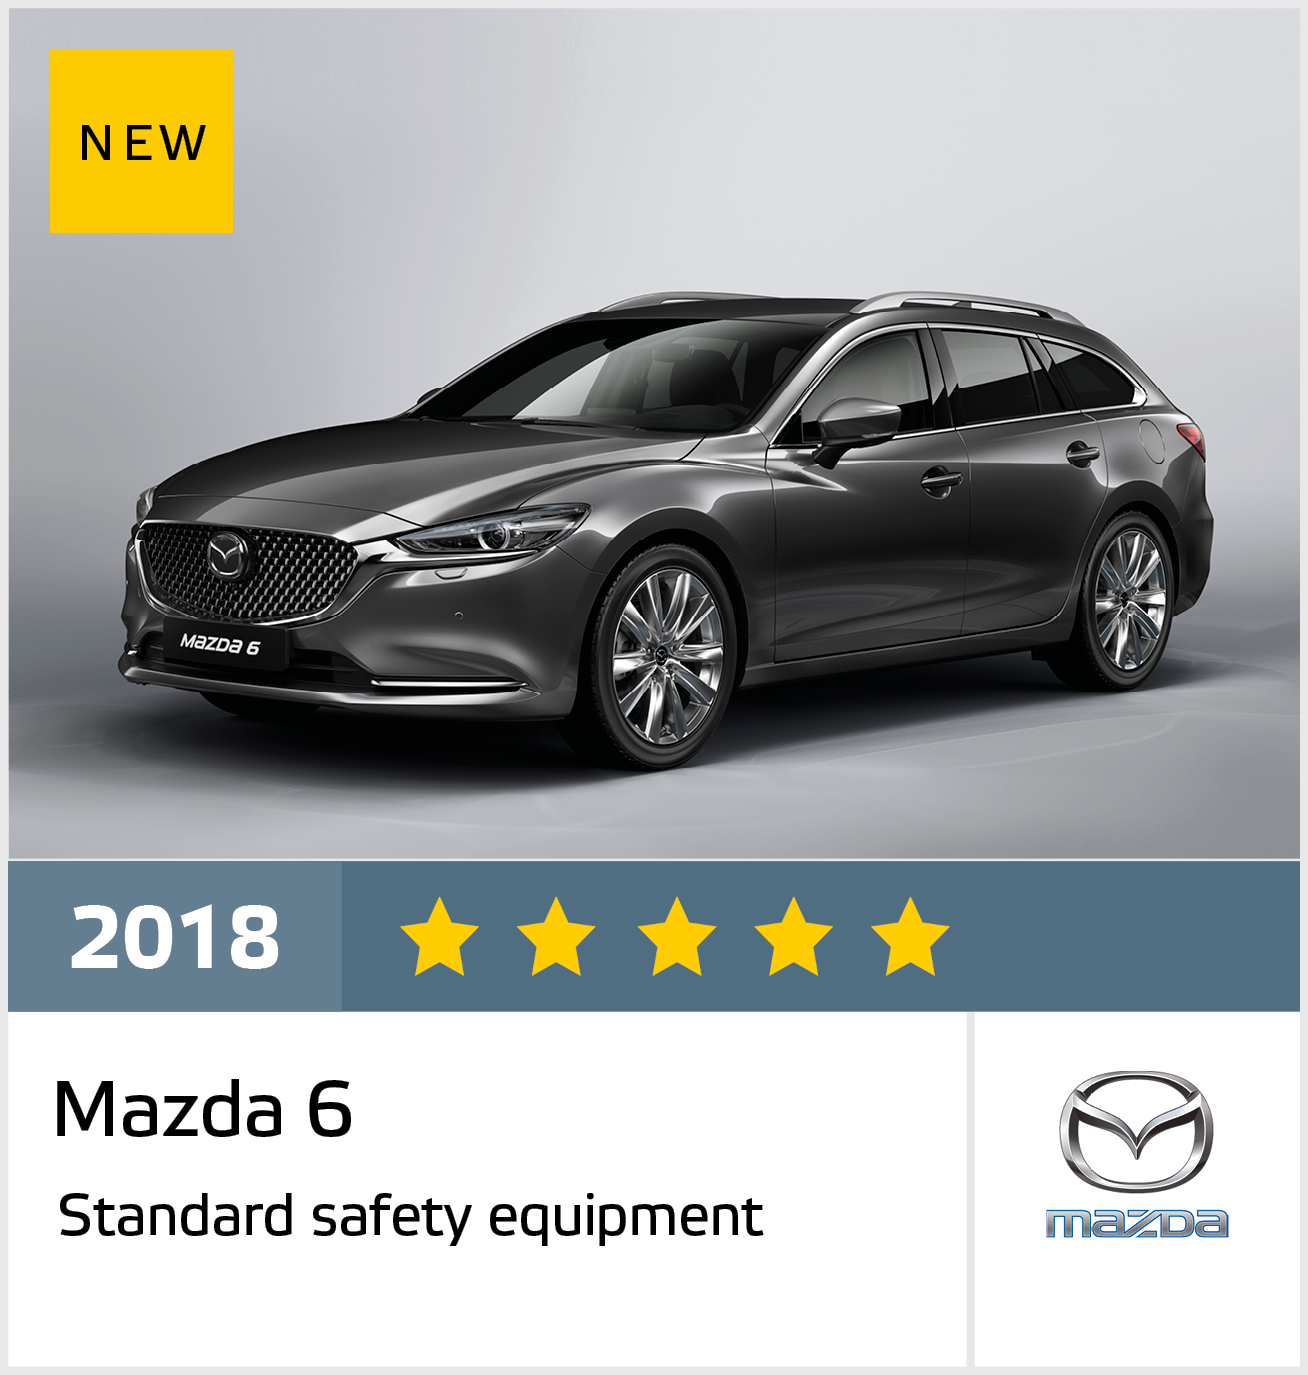 hight resolution of official mazda 6 safety rating wiring diagram also saab 9 5 as well 2016 mazda 6 touring on 2003